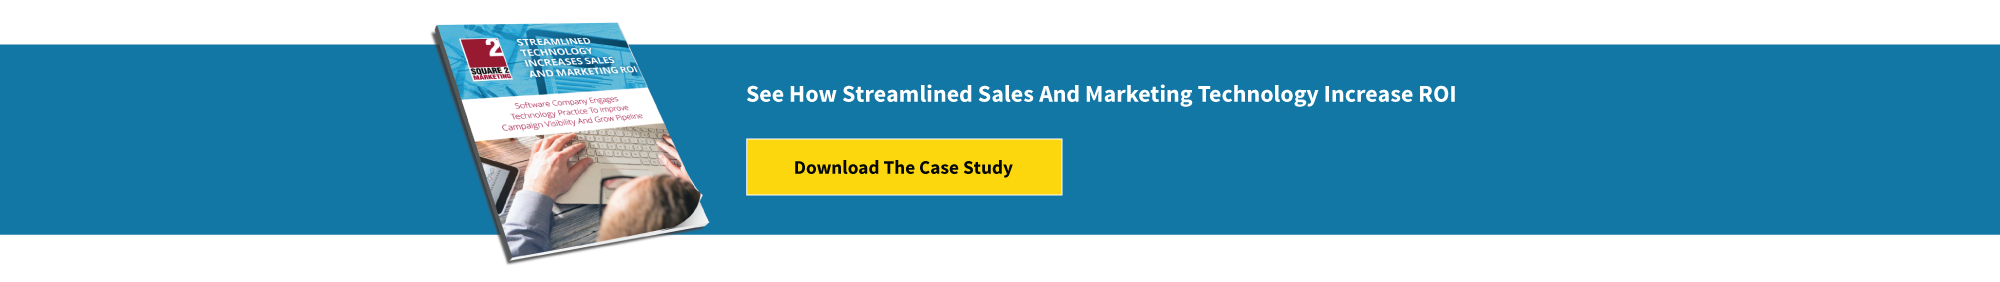 See How Streamlined Sales And Marketing Technology Increase ROI